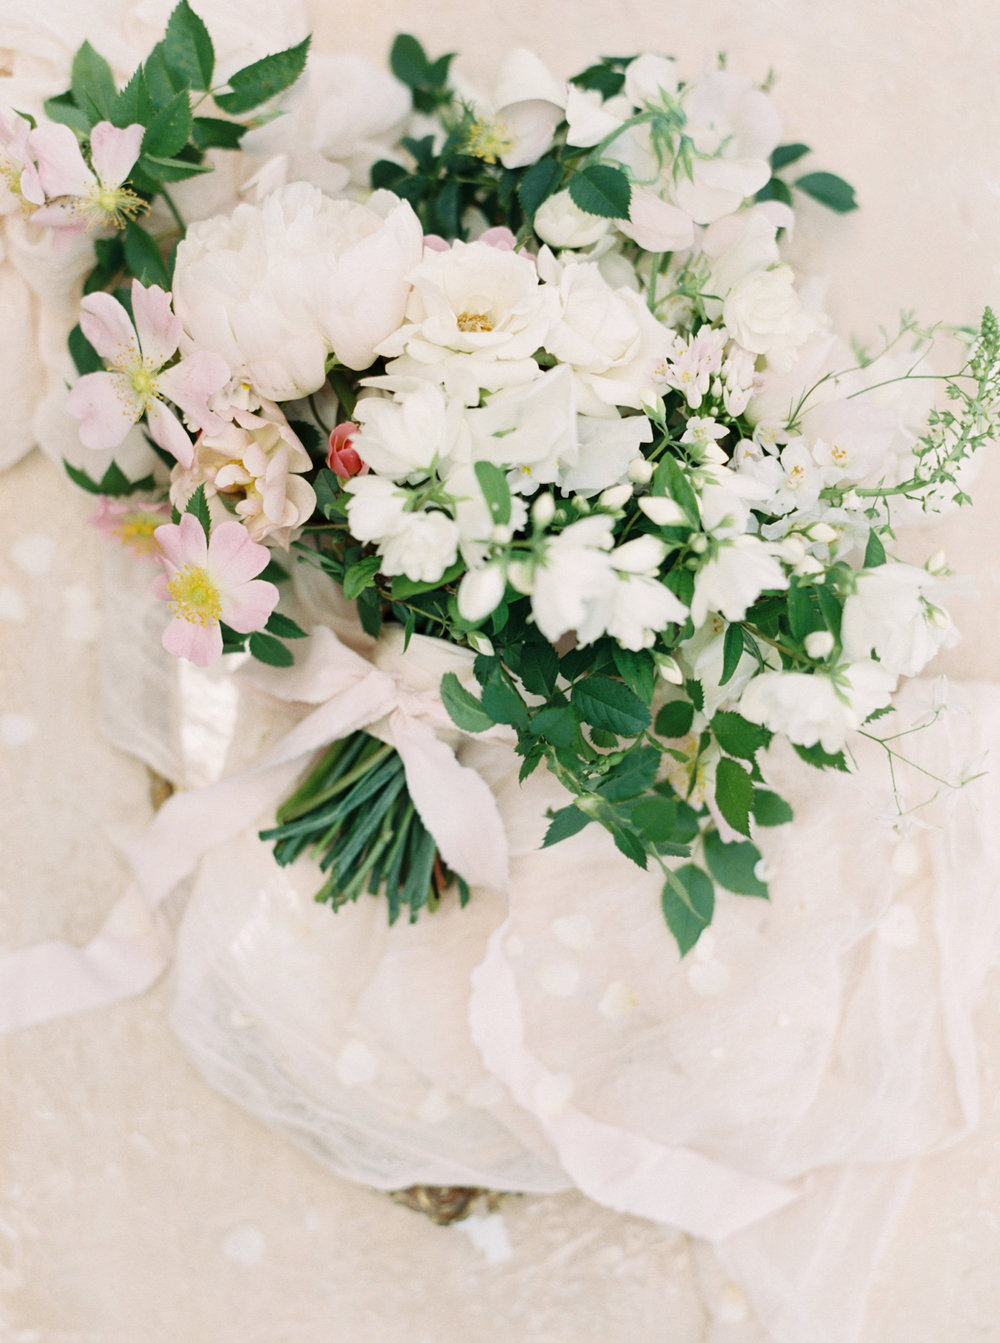 Lily & Sage | Jennifer & Timothy's English Country Manor Wedding Soft Pink Pale Blue White and Silver Toned Green Neutral Tones American Bride North Cadbury Court | Nicole Colwell Photography 0538.jpg